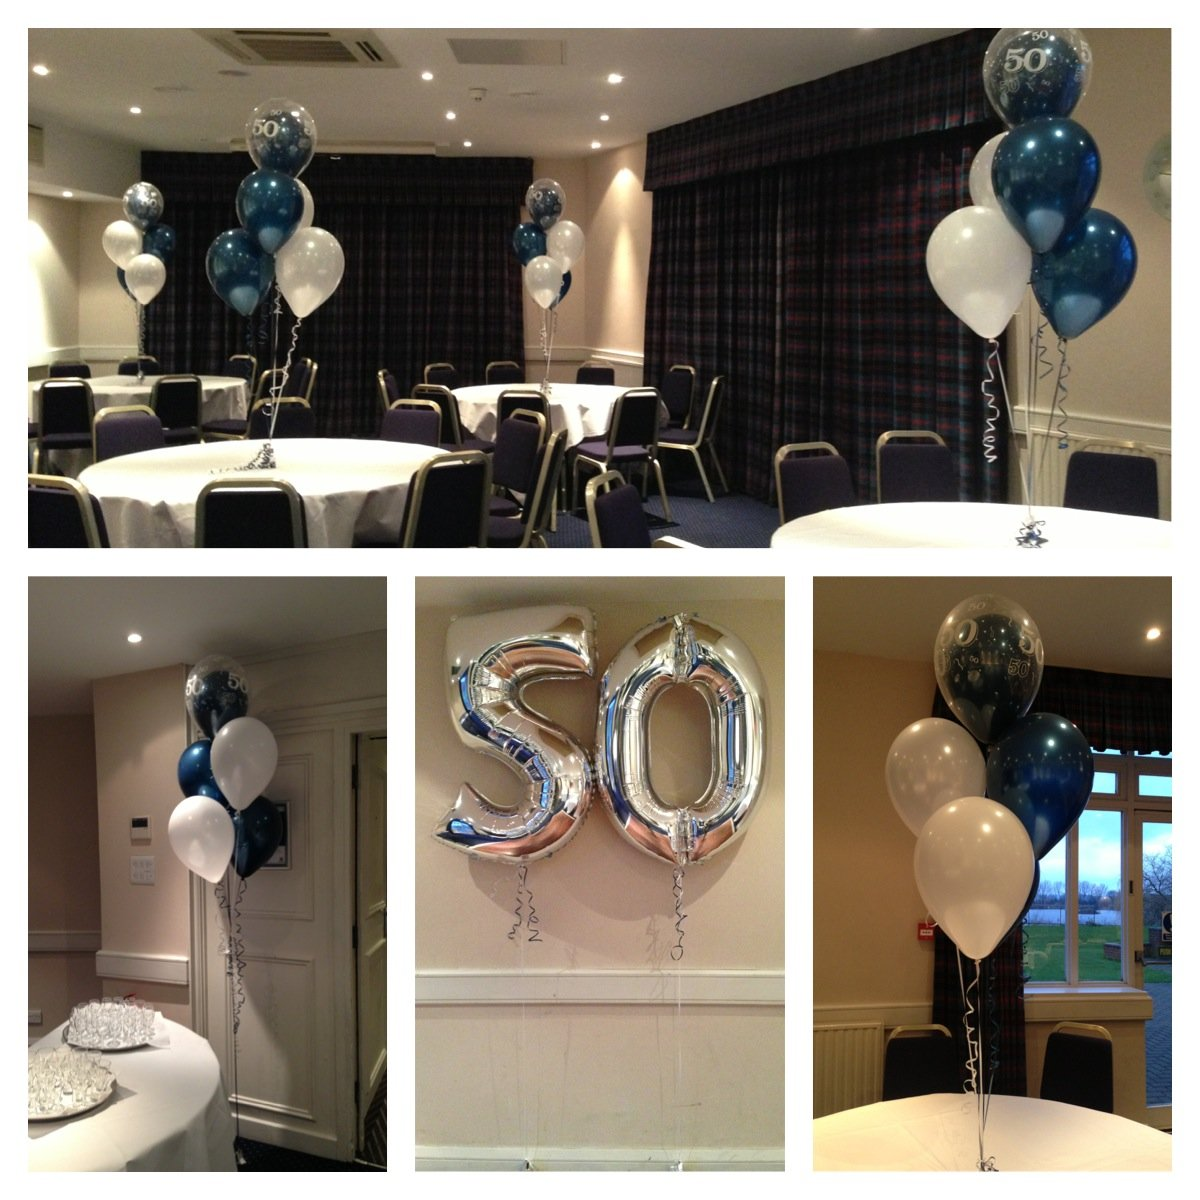 50th Birthday balloons at Holiday Inn Basildon